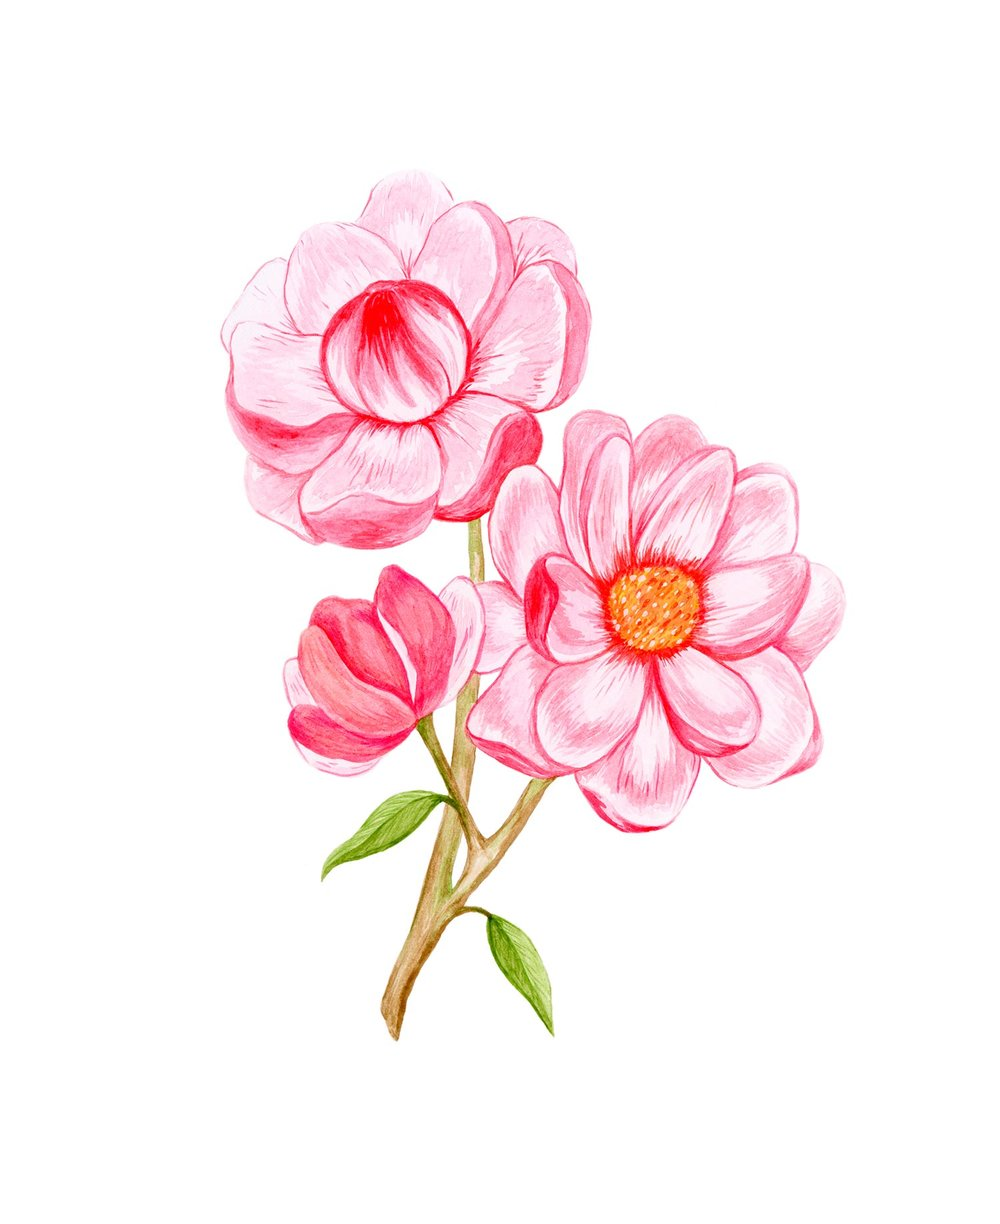 emily-rose-artist--flowers--painting--watercolour--observations.jpg